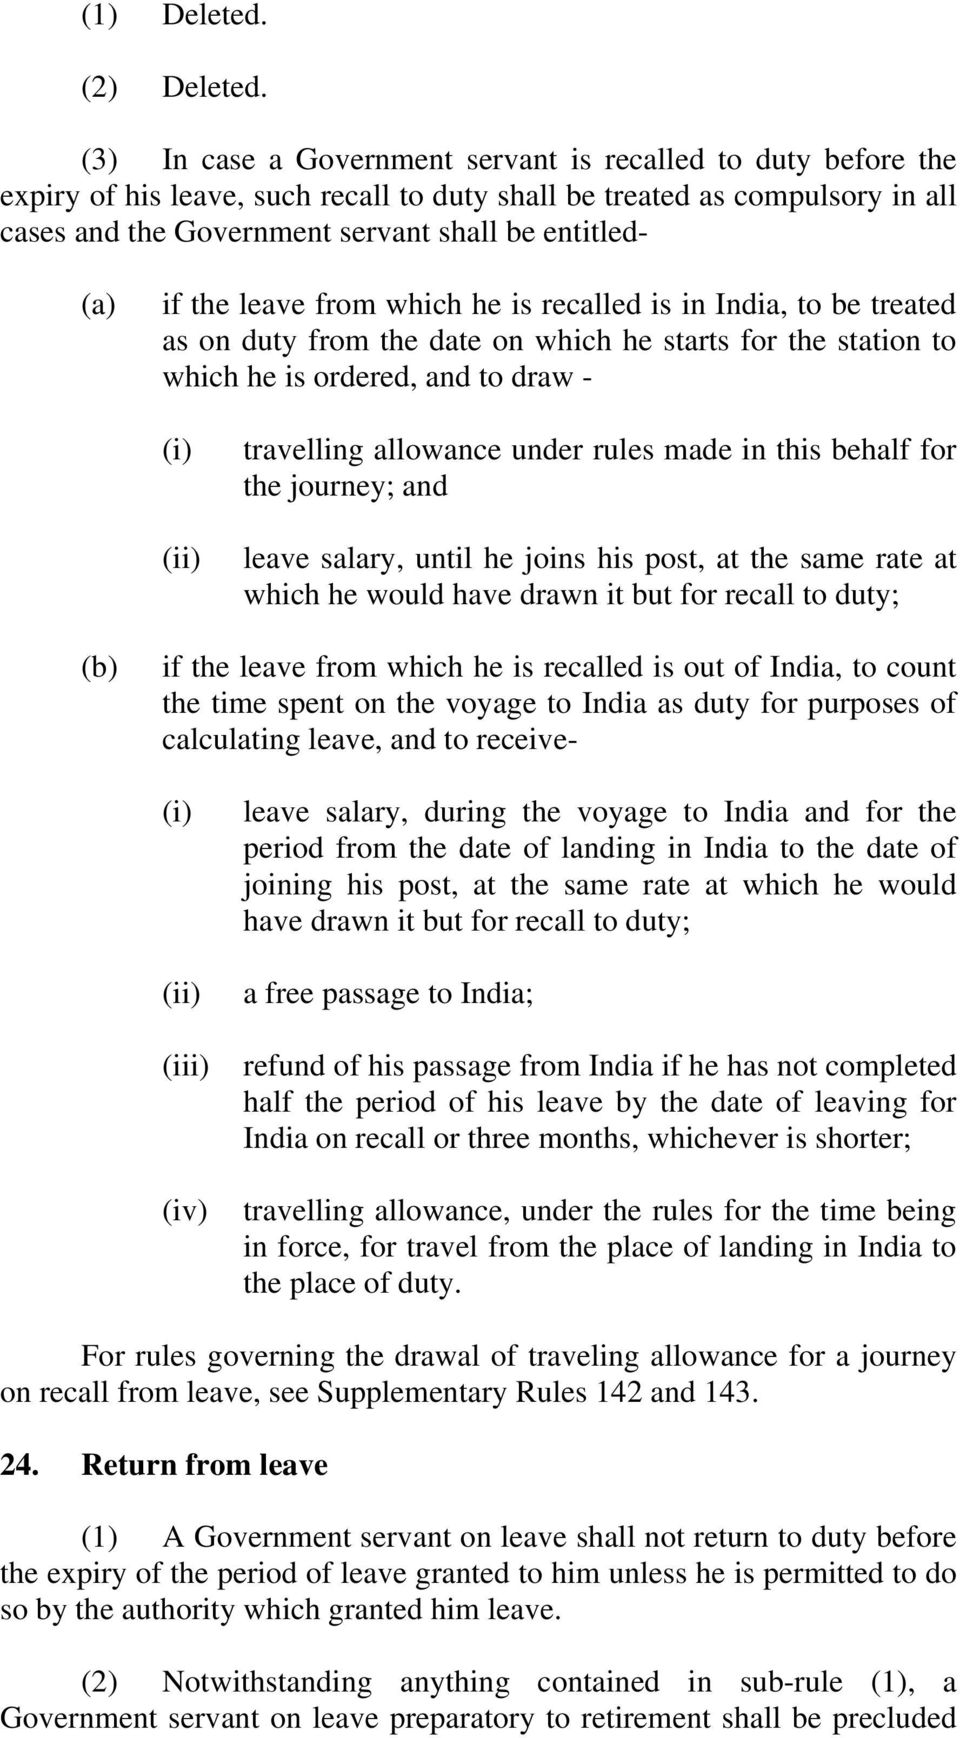 if the leave from which he is recalled is in India, to be treated as on duty from the date on which he starts for the station to which he is ordered, and to draw - (i) (ii) travelling allowance under